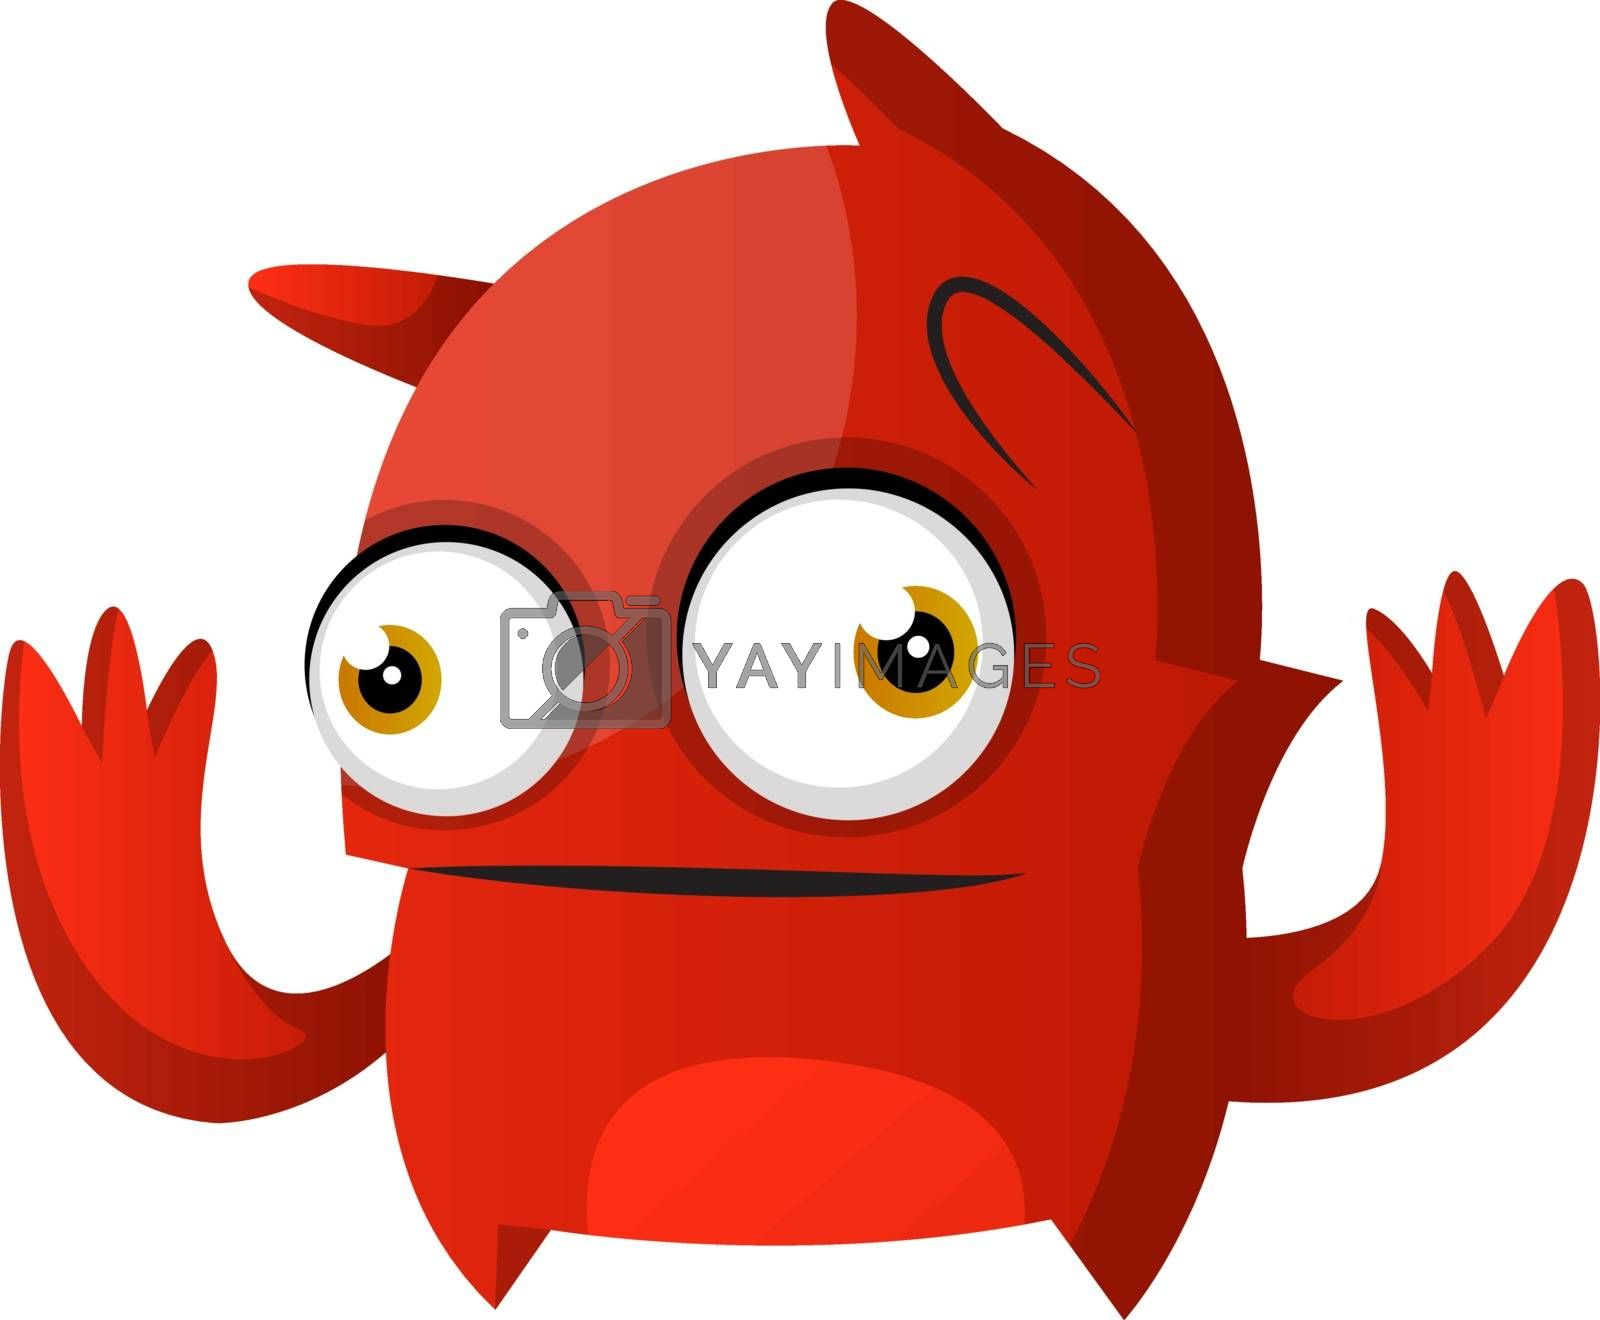 Royalty free image of Red monster with hands up illustration vector on white backgroun by Morphart